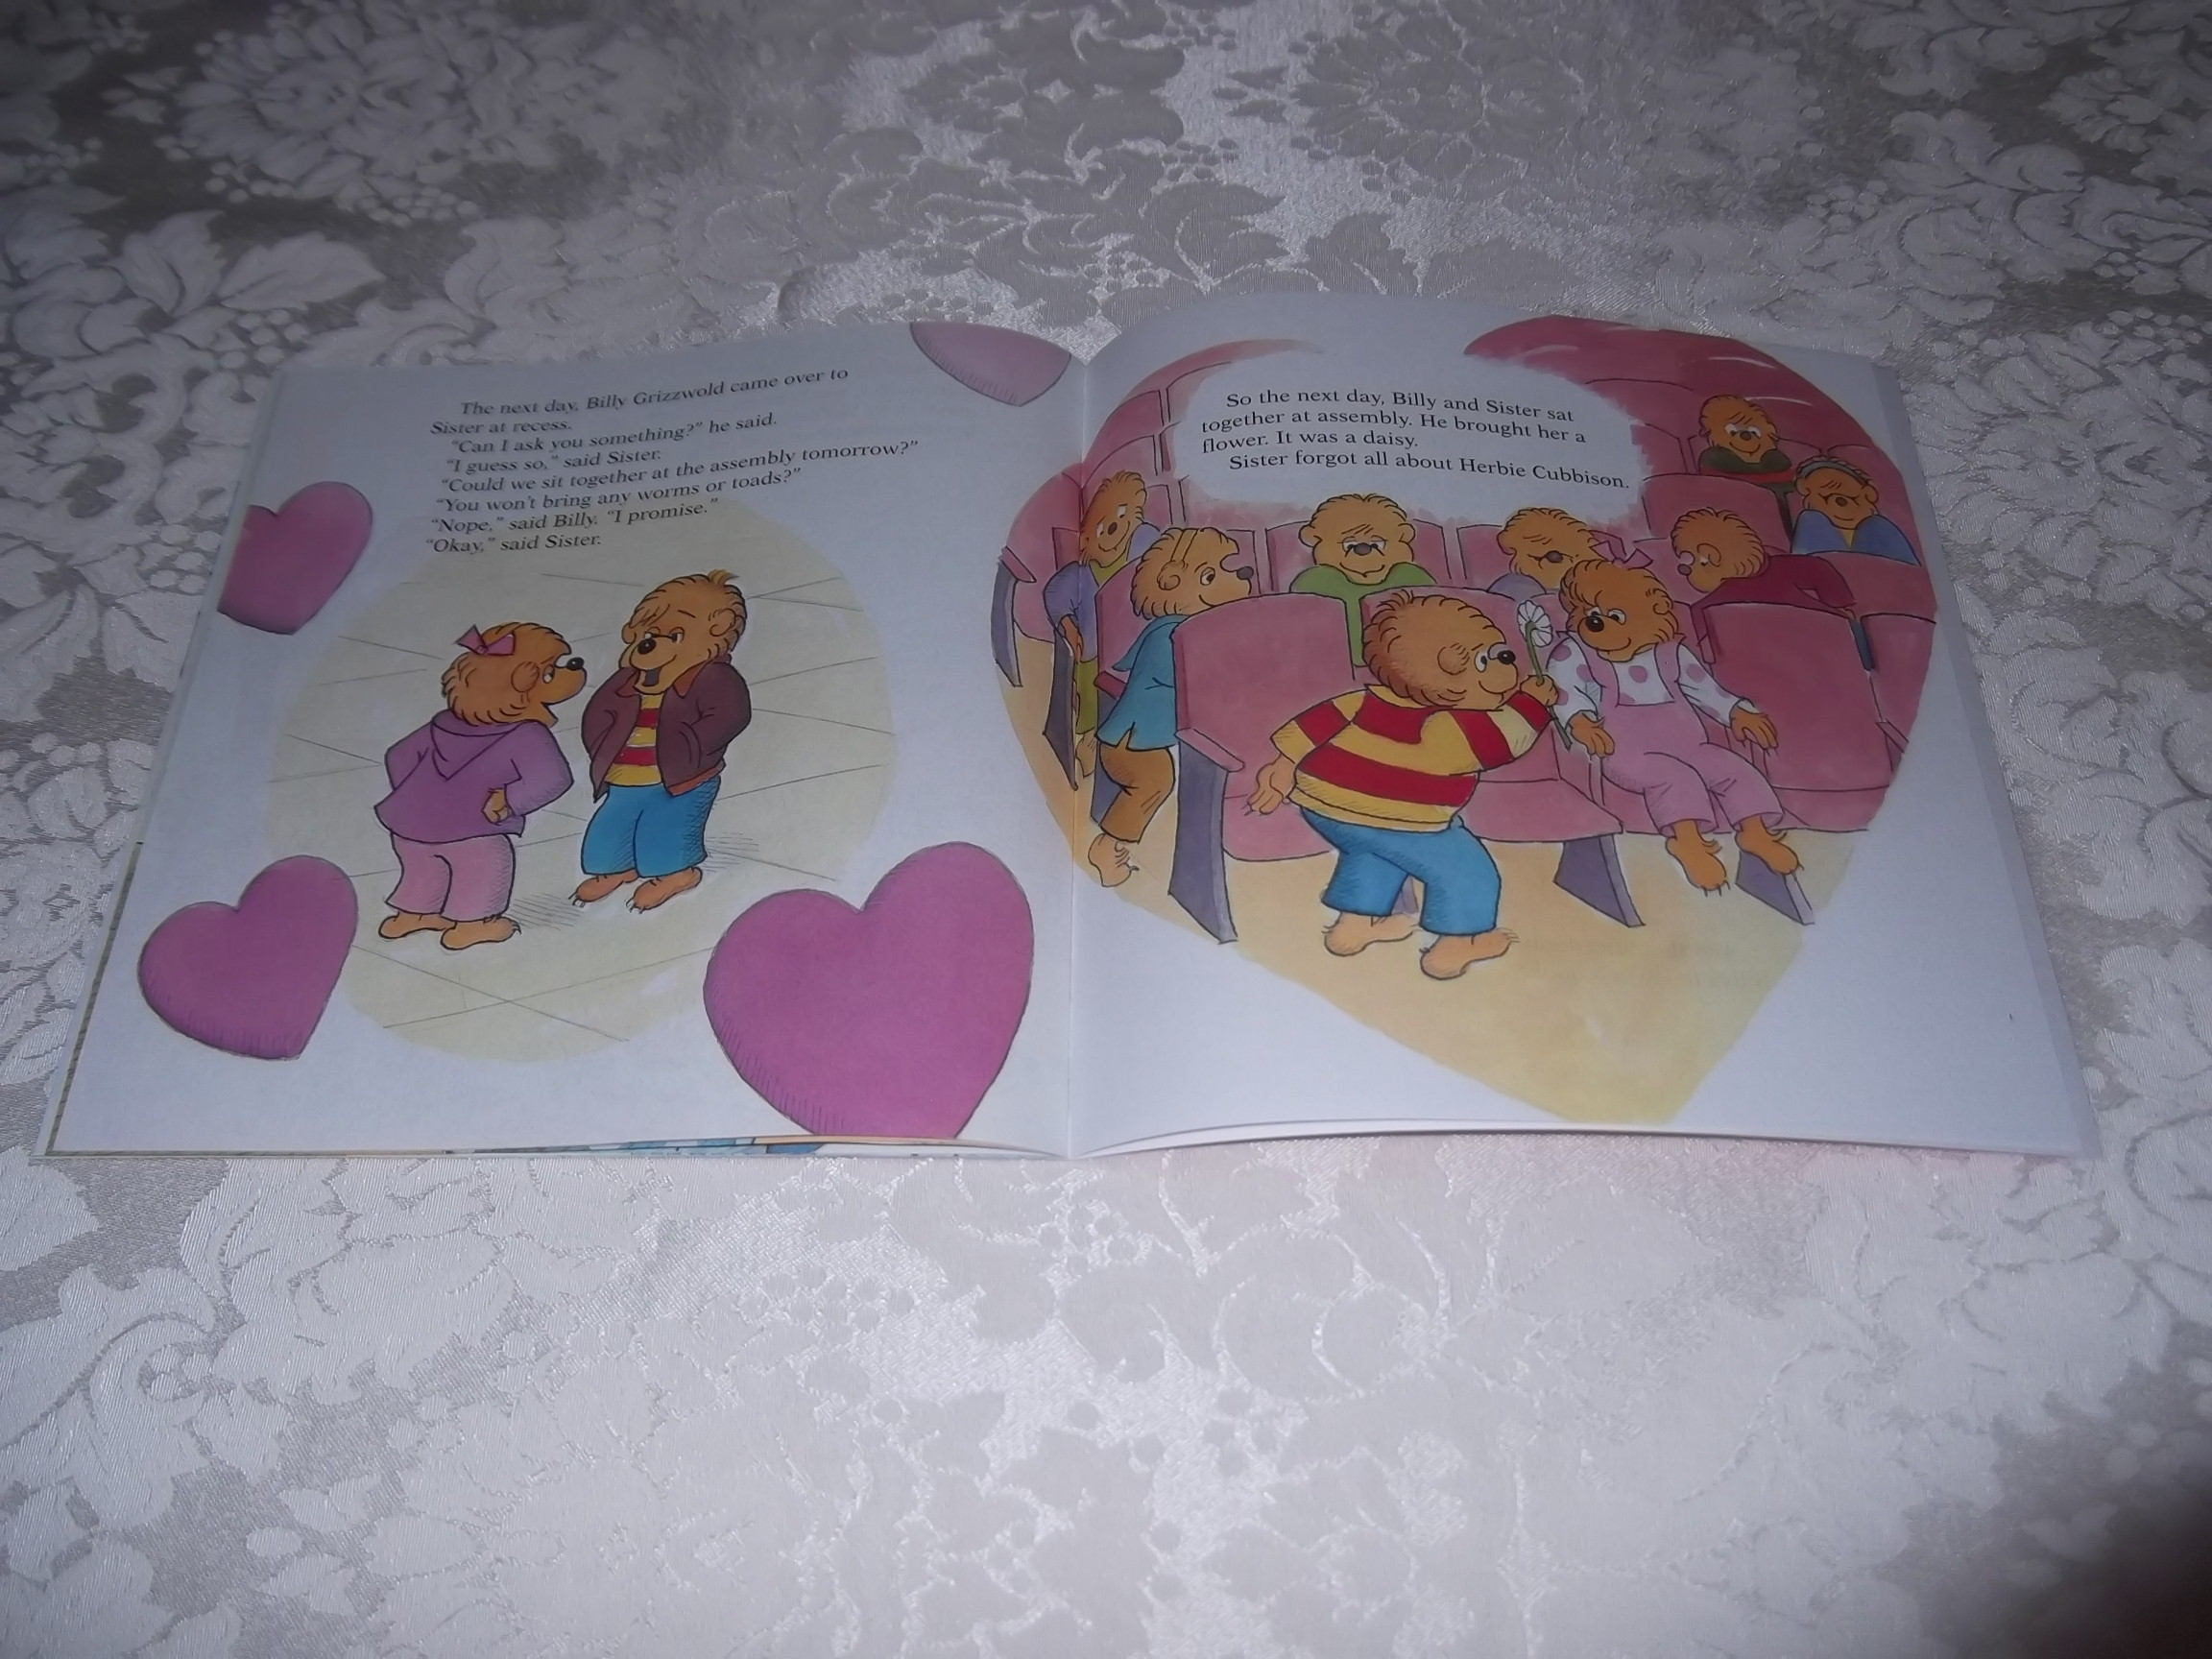 Image 4 of The Berenstain Bears' Funny Valentine Stan & Jan Berenstain Brand New Softcover